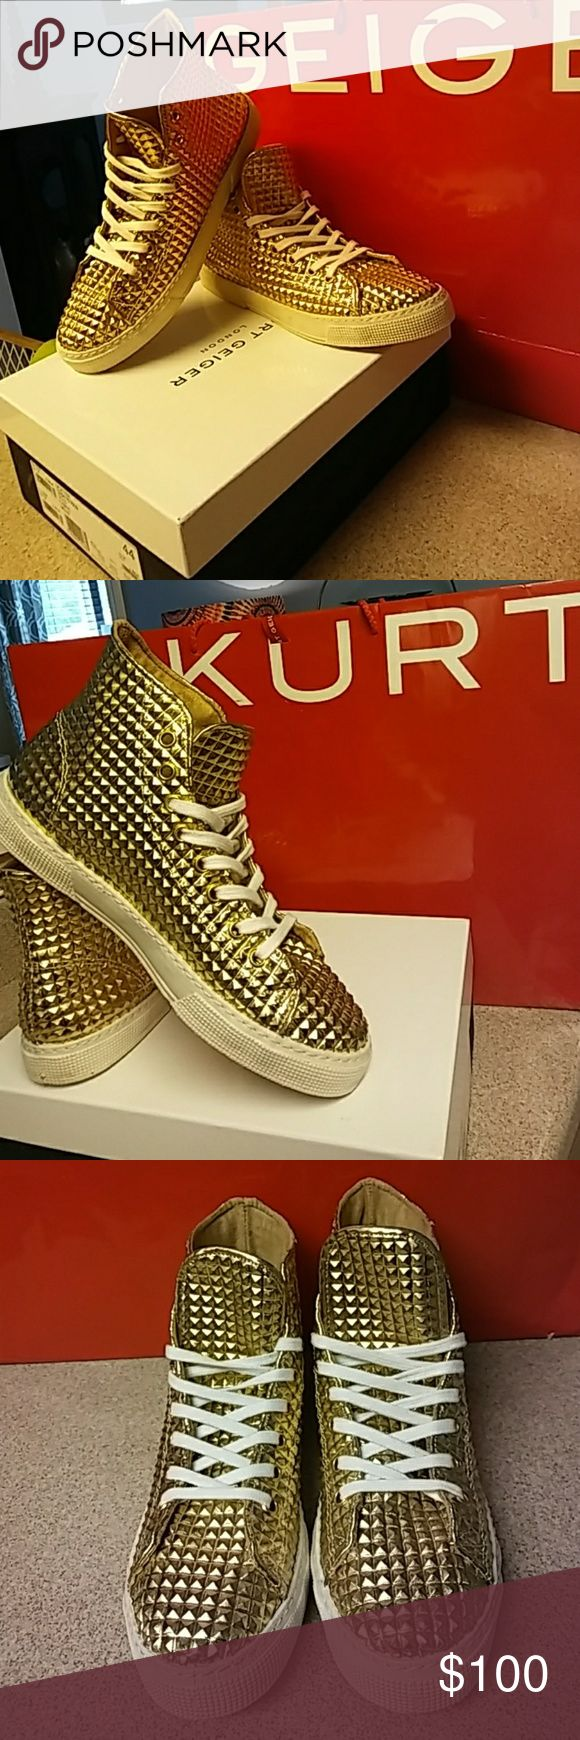 KURT GEIGER SNEAKER AUTHENTIC  KURT GEIGER LONDON DEXTER GOLD LEATHER HIGH TOP SNEAKER TRAINER.SIZE 44 OR (10).THESE SNEAKERS ARE IN EXCELLENT PRE OWNED CONDITION.WORN THREE TIMES.NO RIPS, TEARS, COMES FROM A SMOKEFREE CLEAN HOME.COMES WITH BOX AND ORIGINAL SHOPPING BAG.THEY ARE MEN BUT LADIES CAN WEAR THESE ALSO. KURT GEIGER LONDON Shoes Sneakers